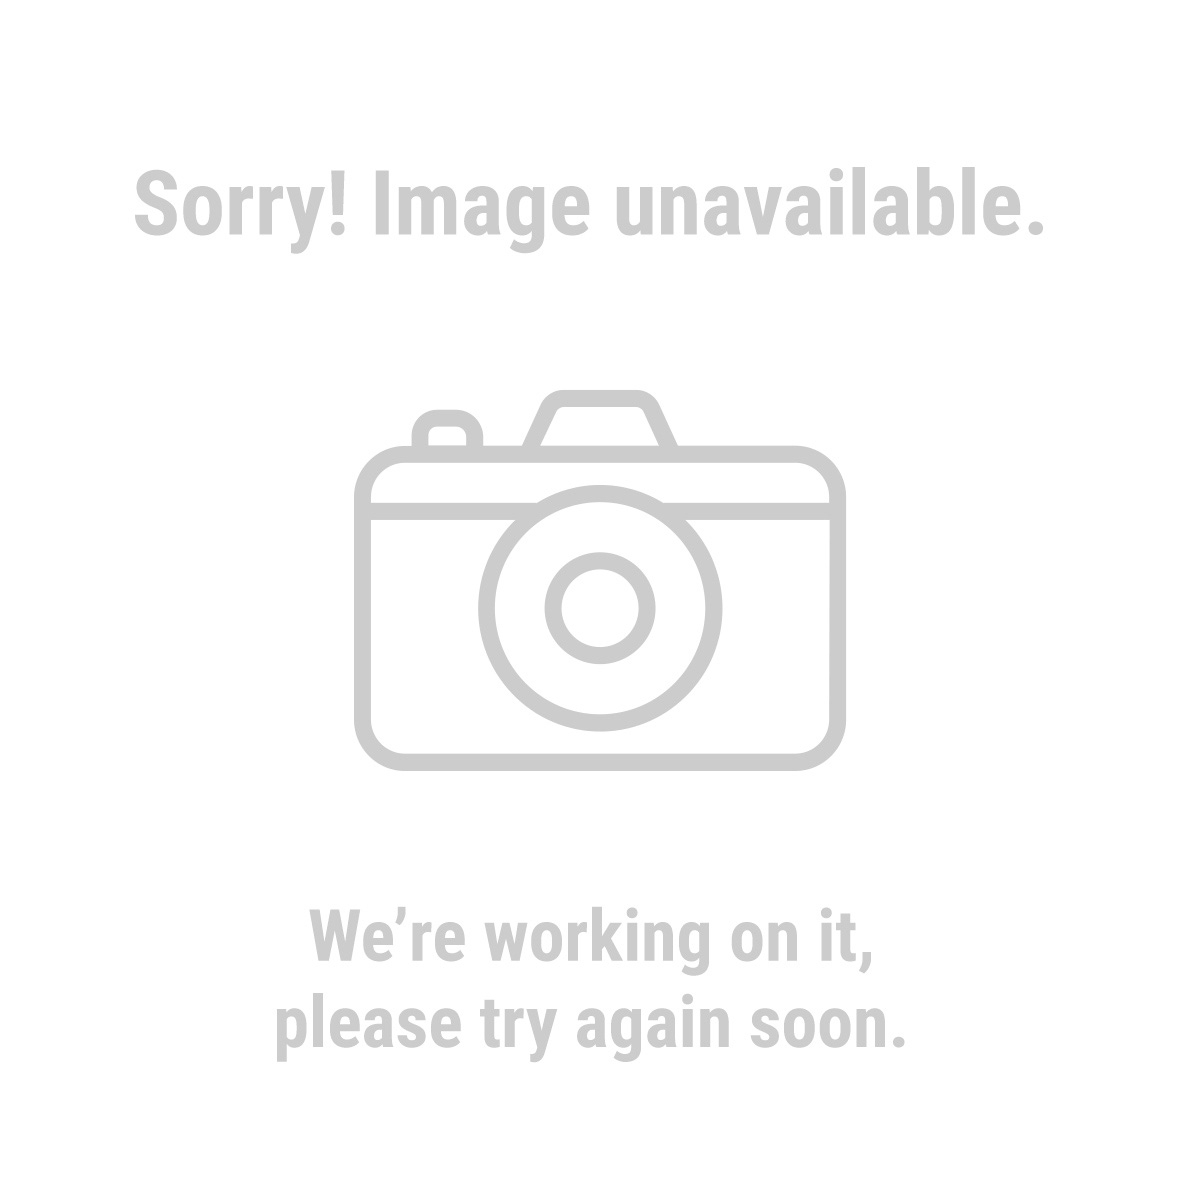 2000 lb. Electric ATV/UTV Winch with Automatic Load-Holding Brake